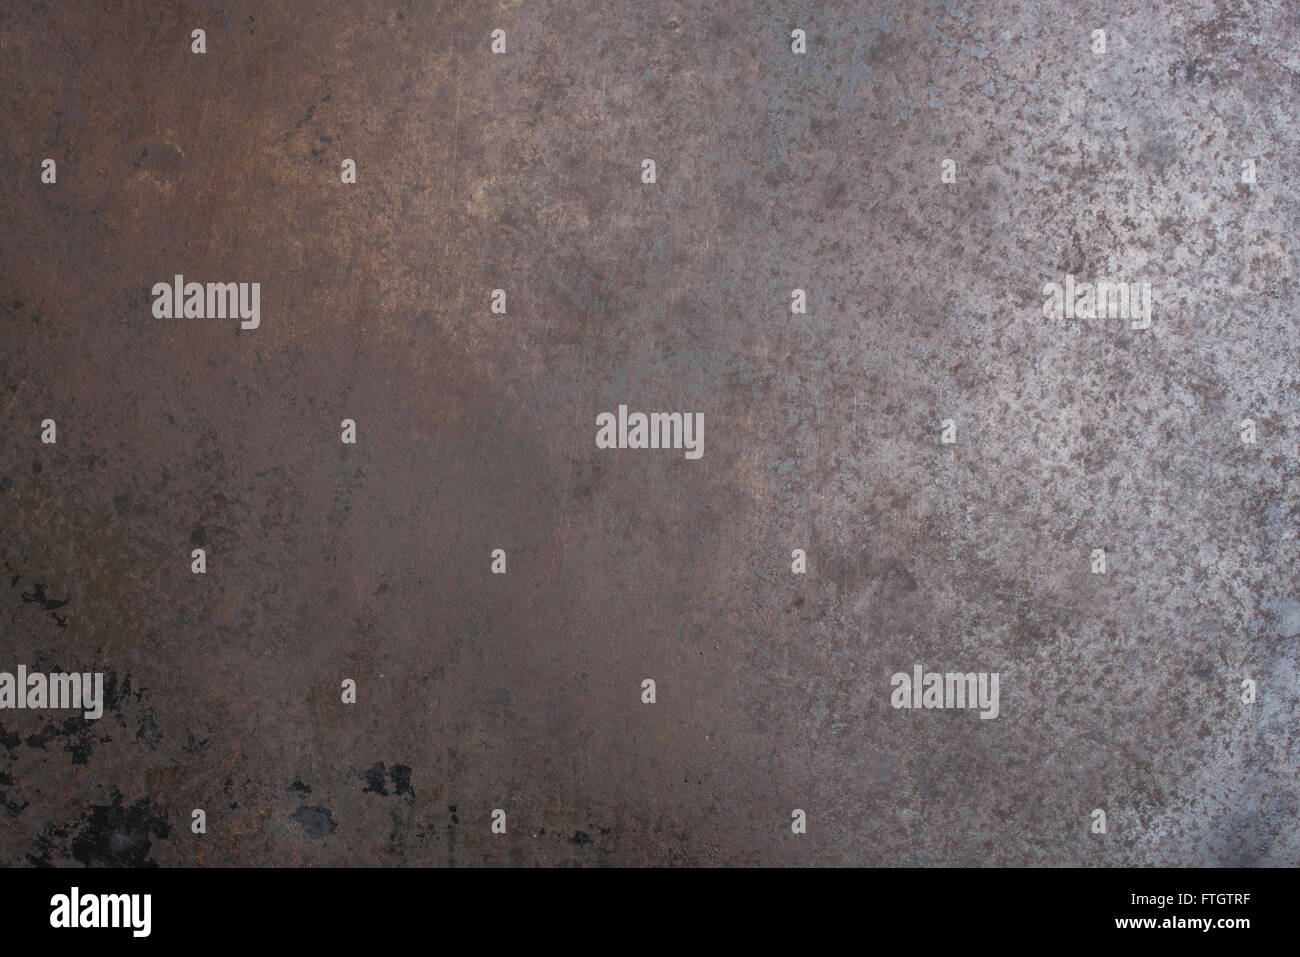 Old baking plate with rust as background - Stock Image